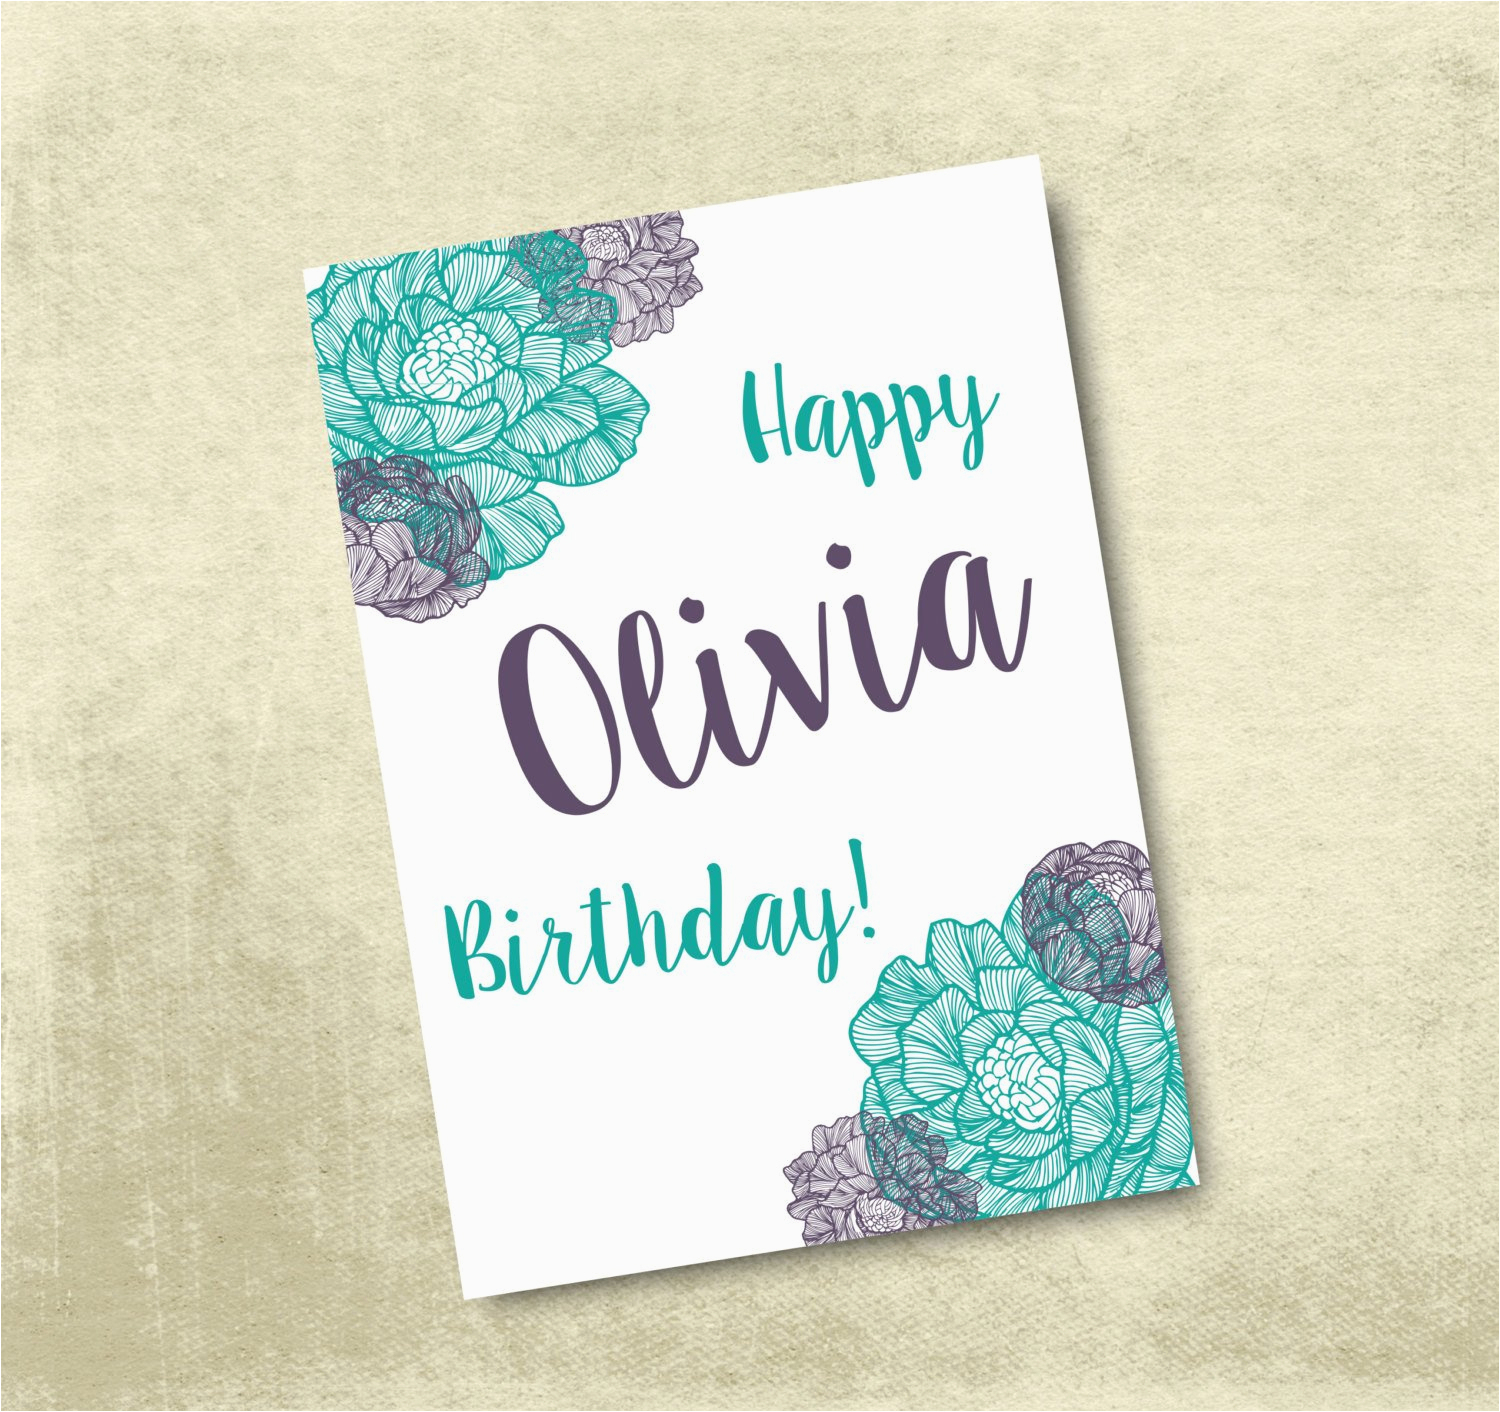 Customized Birthday Cards Free Printable | Birthdaybuzz - Free Printable Personalized Birthday Cards